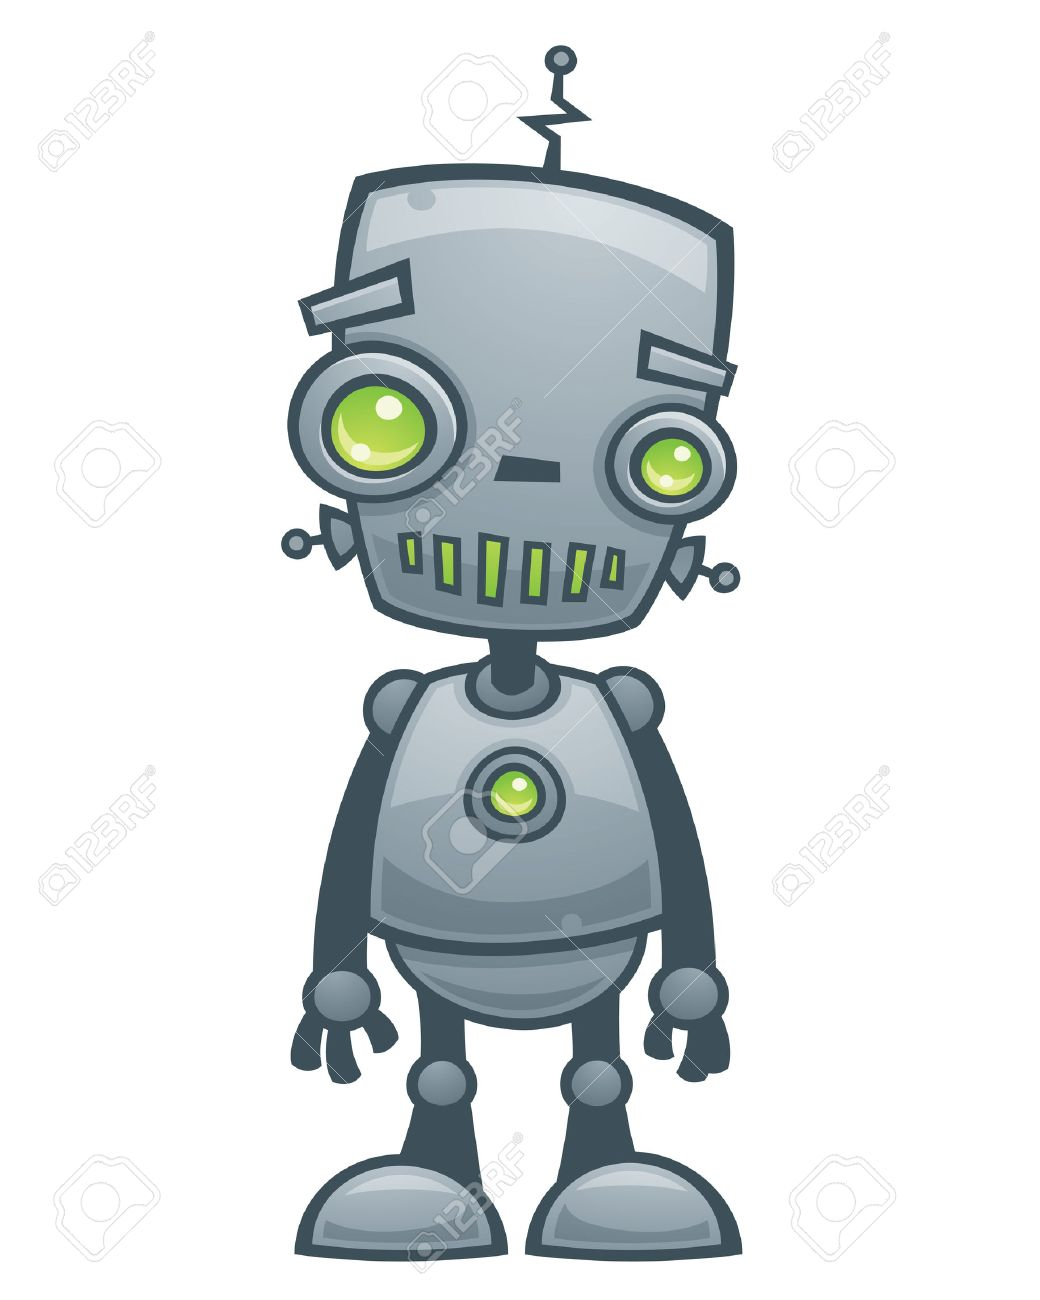 Cartoon vector illustration of a happy little robot with green